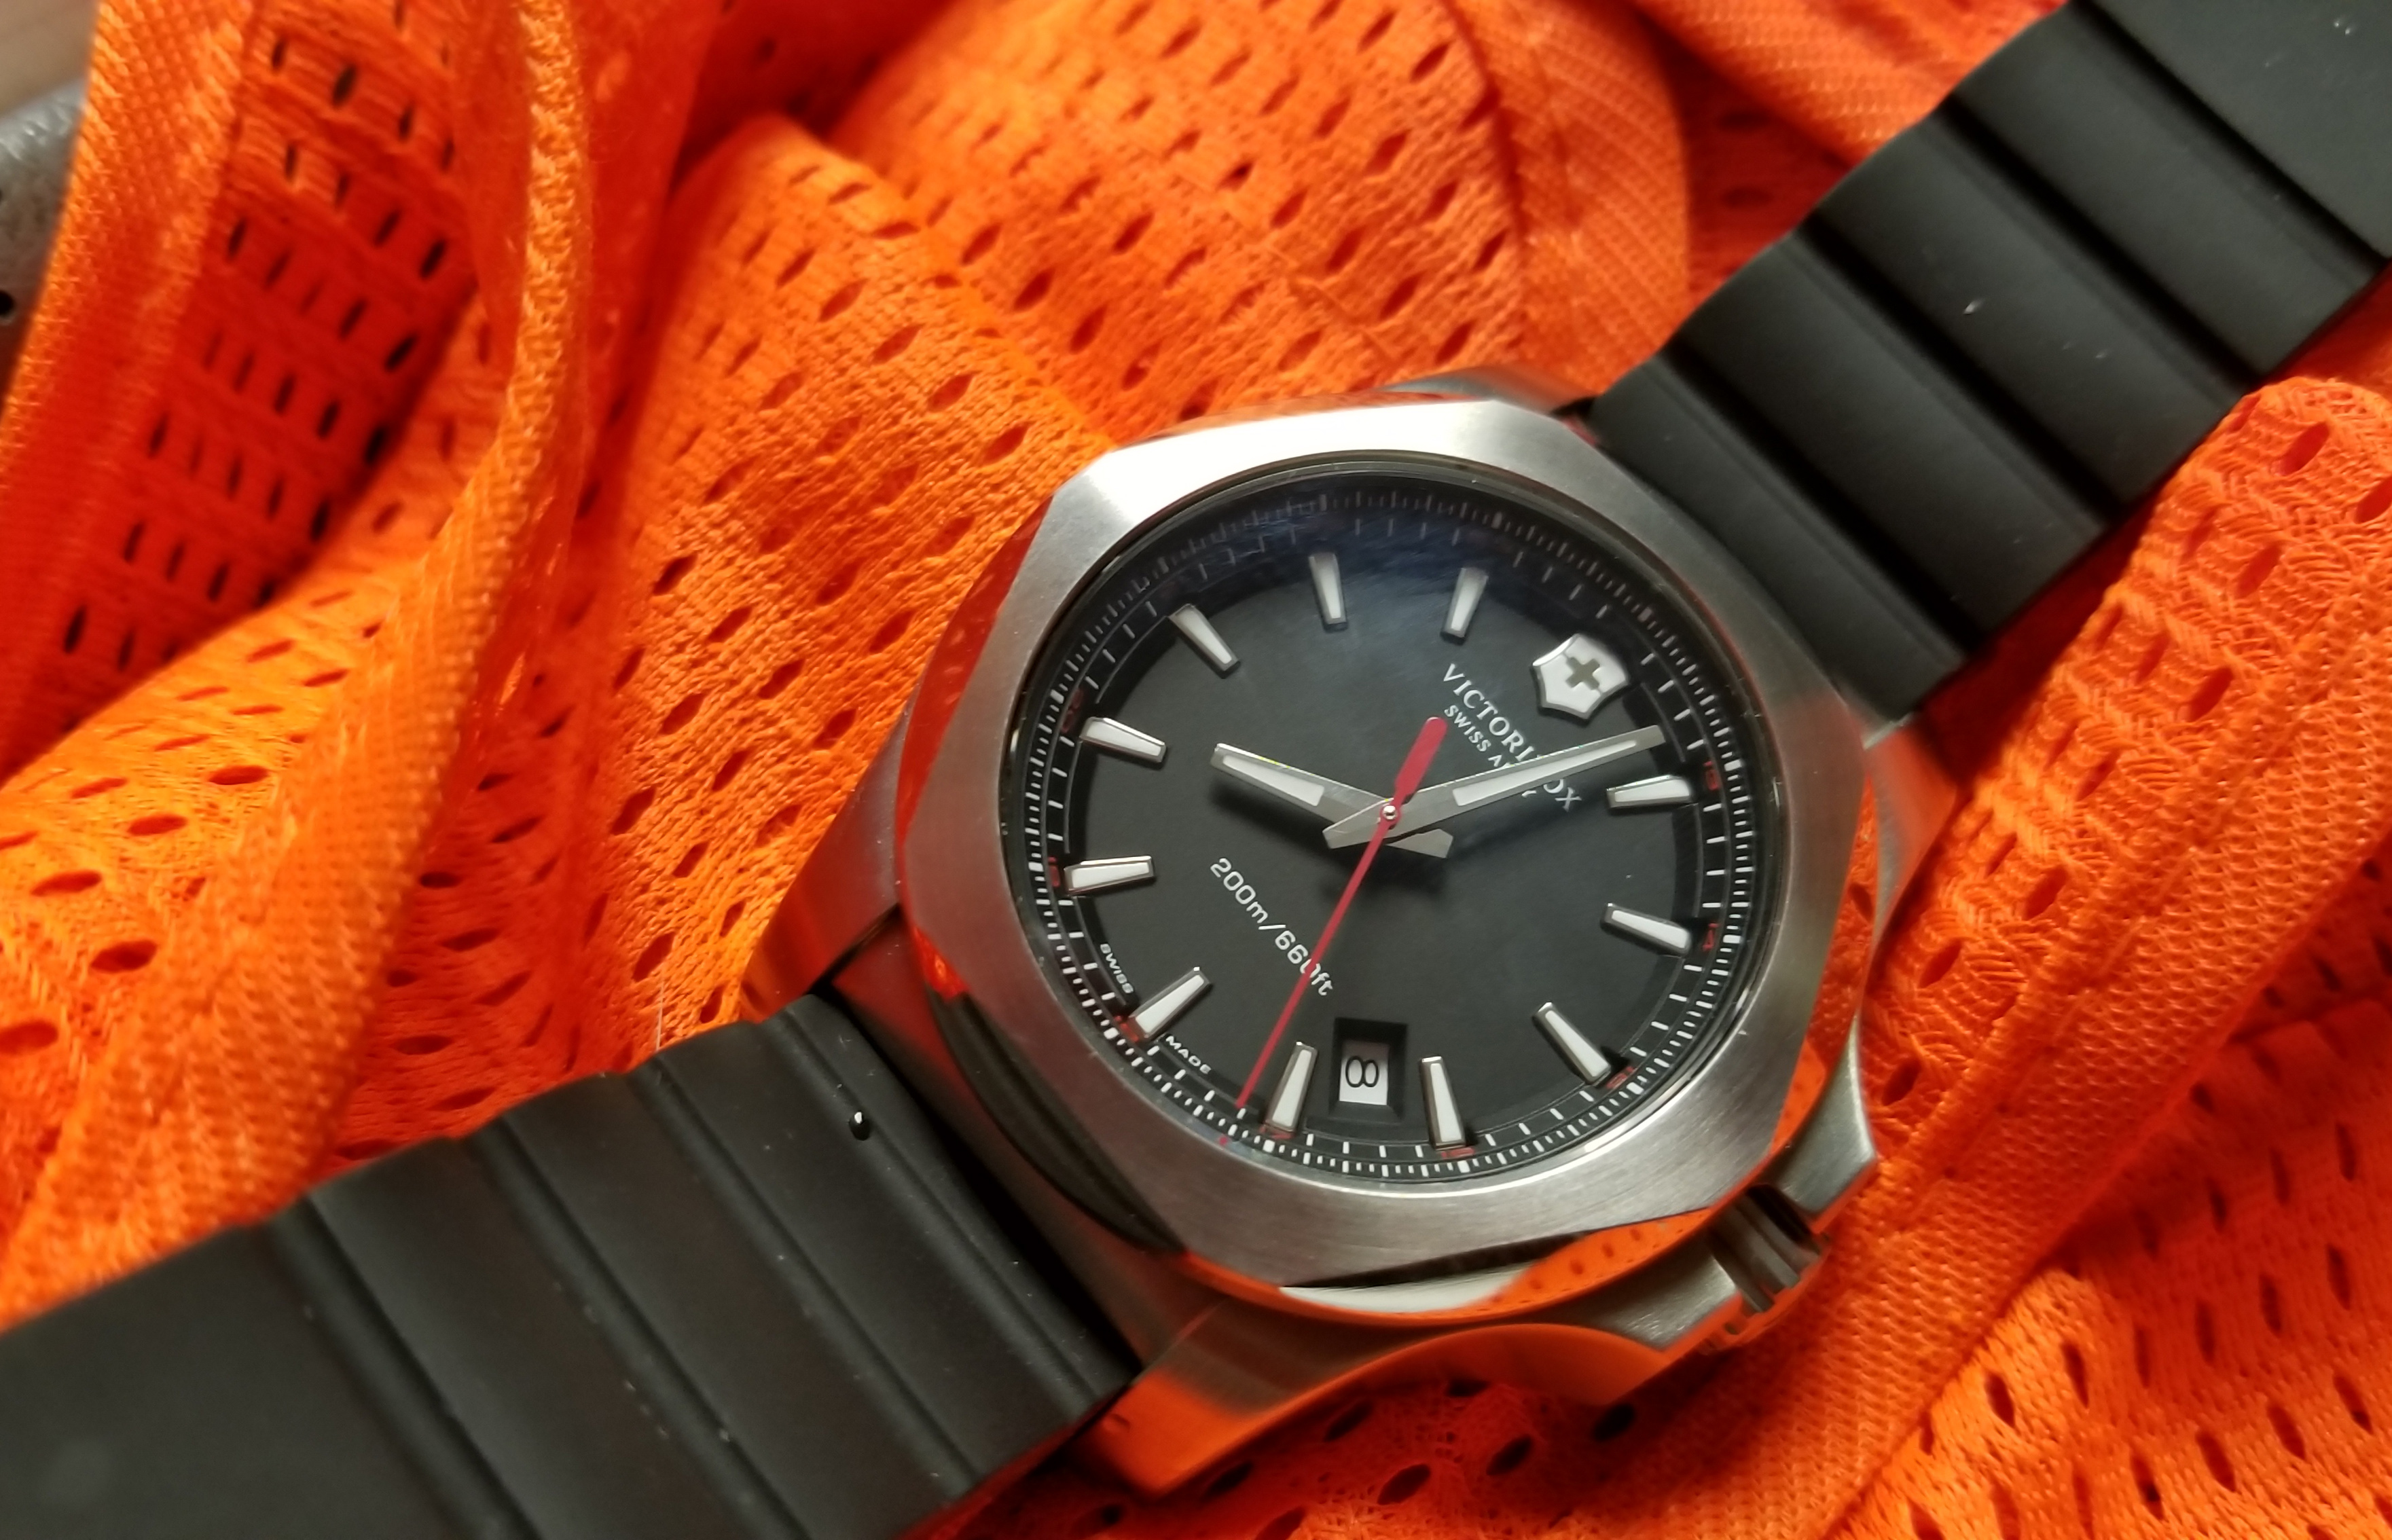 Victorinox INOX Watch Review